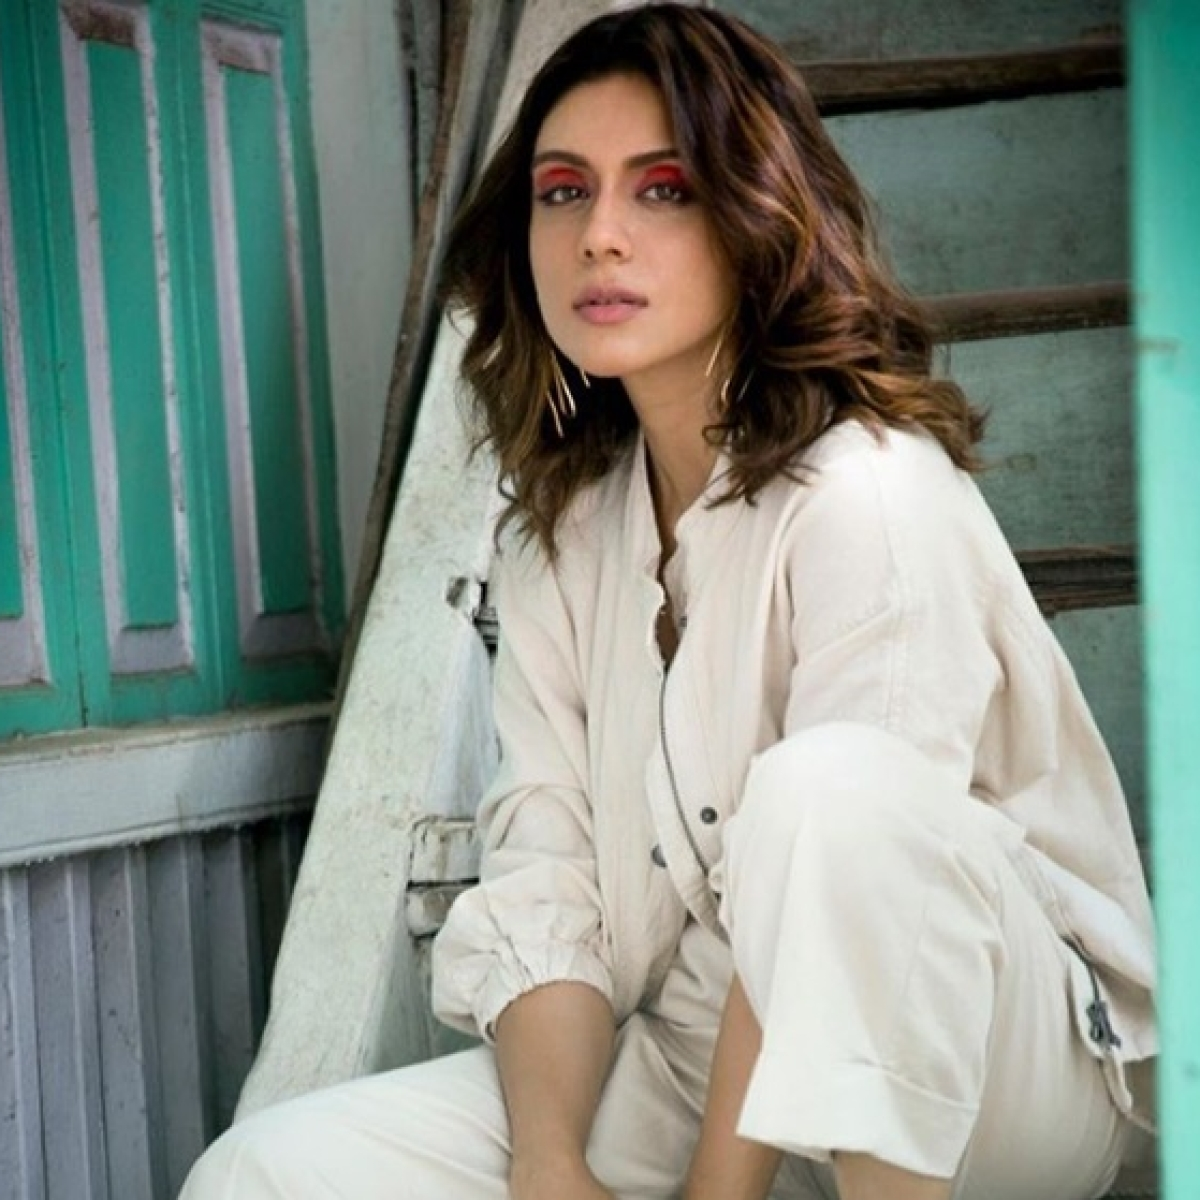 Karim Morani's daughter Zoa discharged after COVID-19 treatment